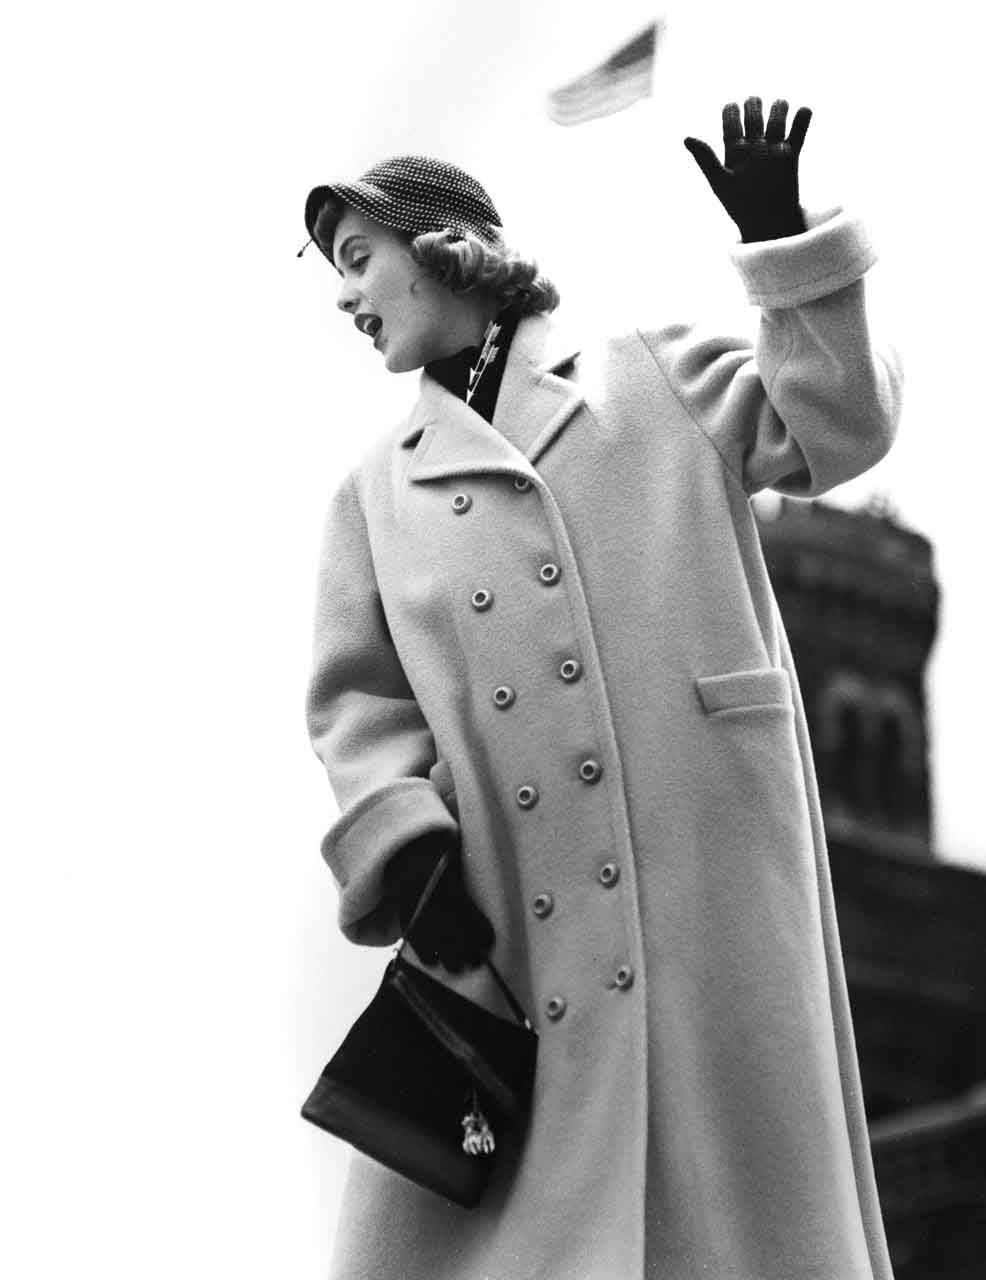 13_53_Model wearing long coat, waving_Dan Wynn Archive.jpg